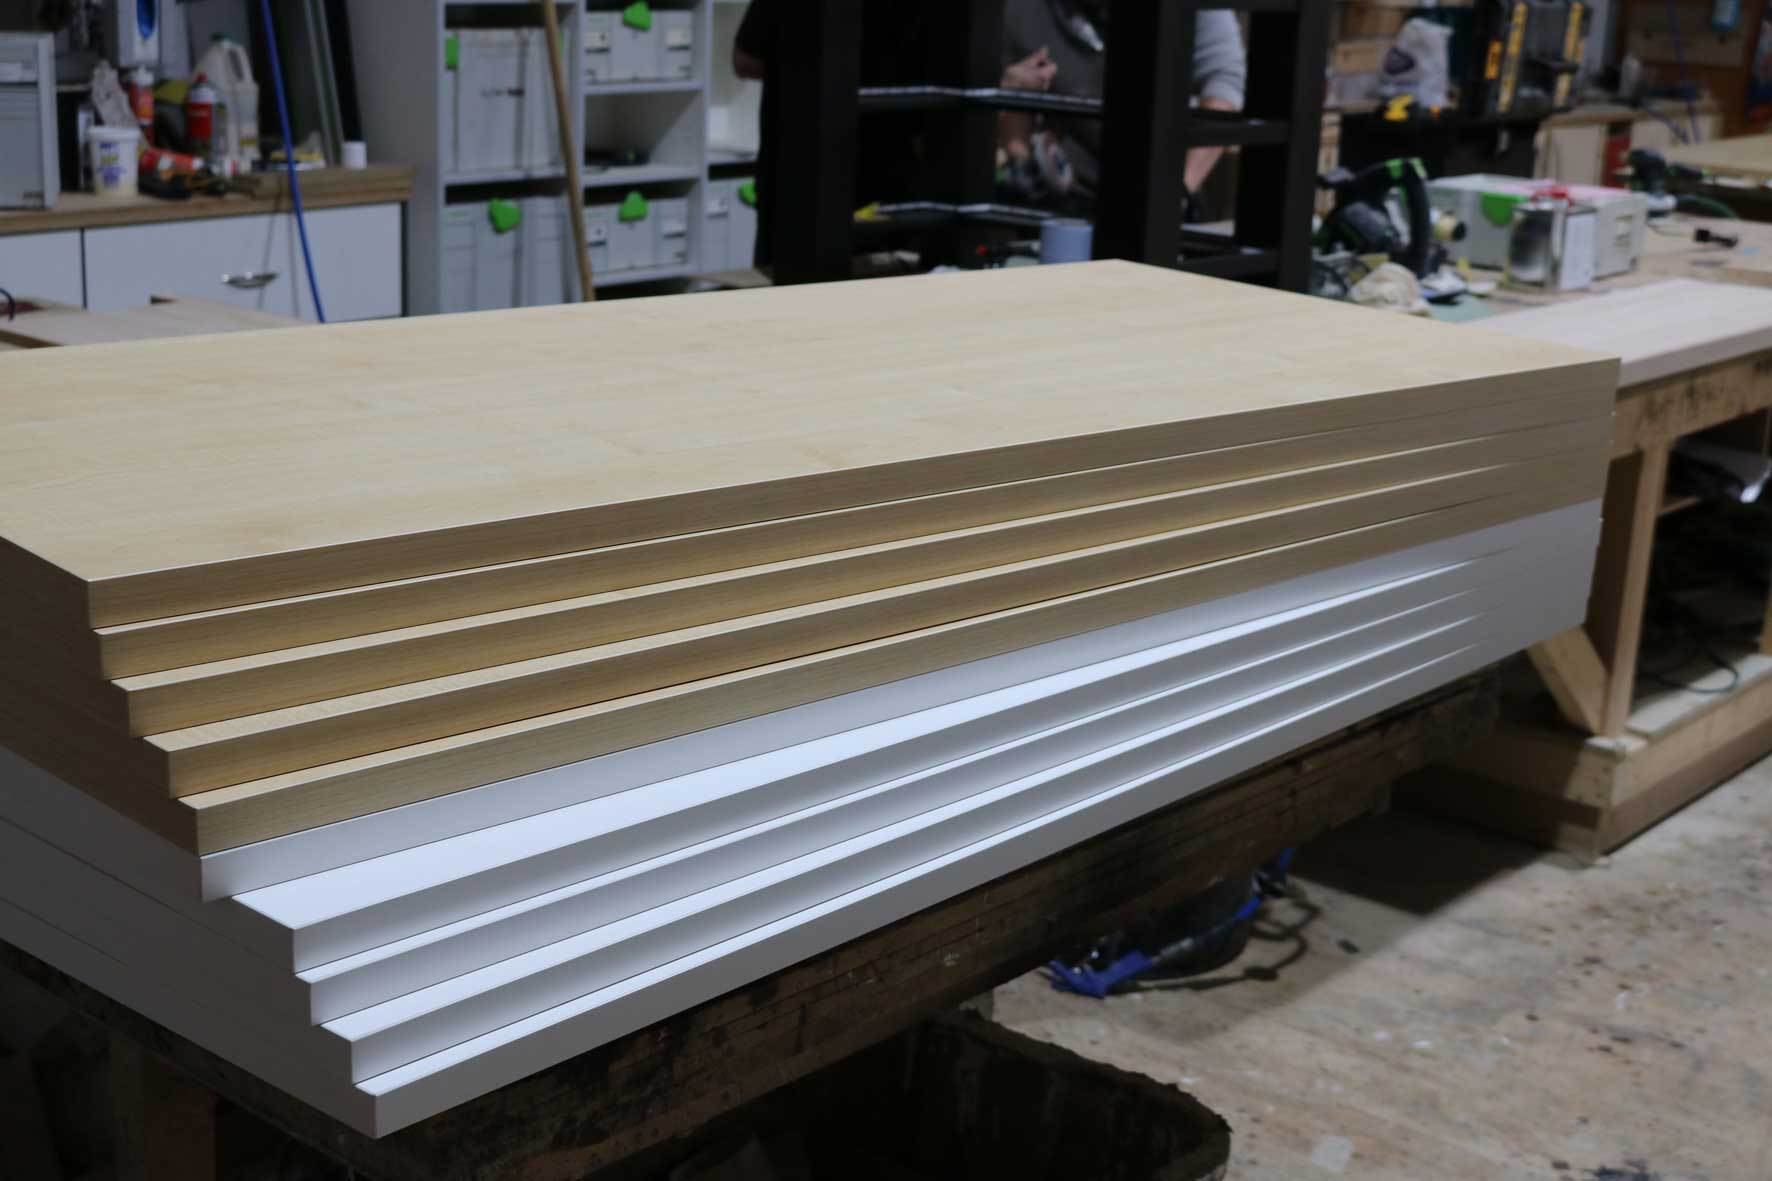 Client needed bespoke desk-tops